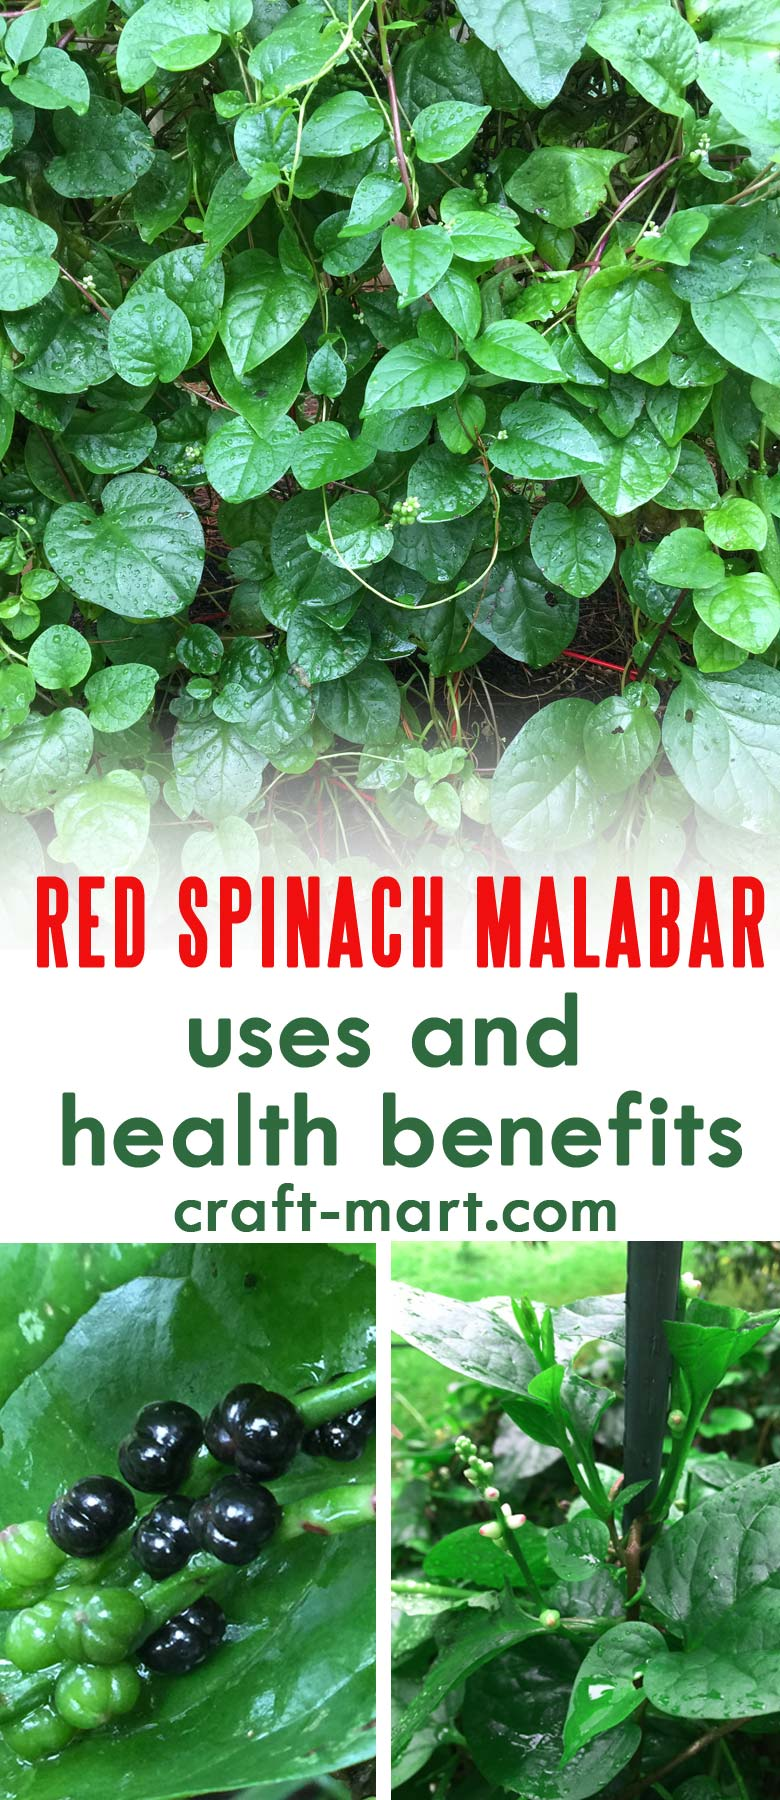 Also known as Ceylon spinach, climbing spinach, gui, acelga trapadora, bratana, libato, vine spinach and Malabar nightshade, Red Spinach Malabar is a member of the Basellaceae family. #growingredspinachmalabar #easytogrowherb #healthbenefitsofspinachmalabar